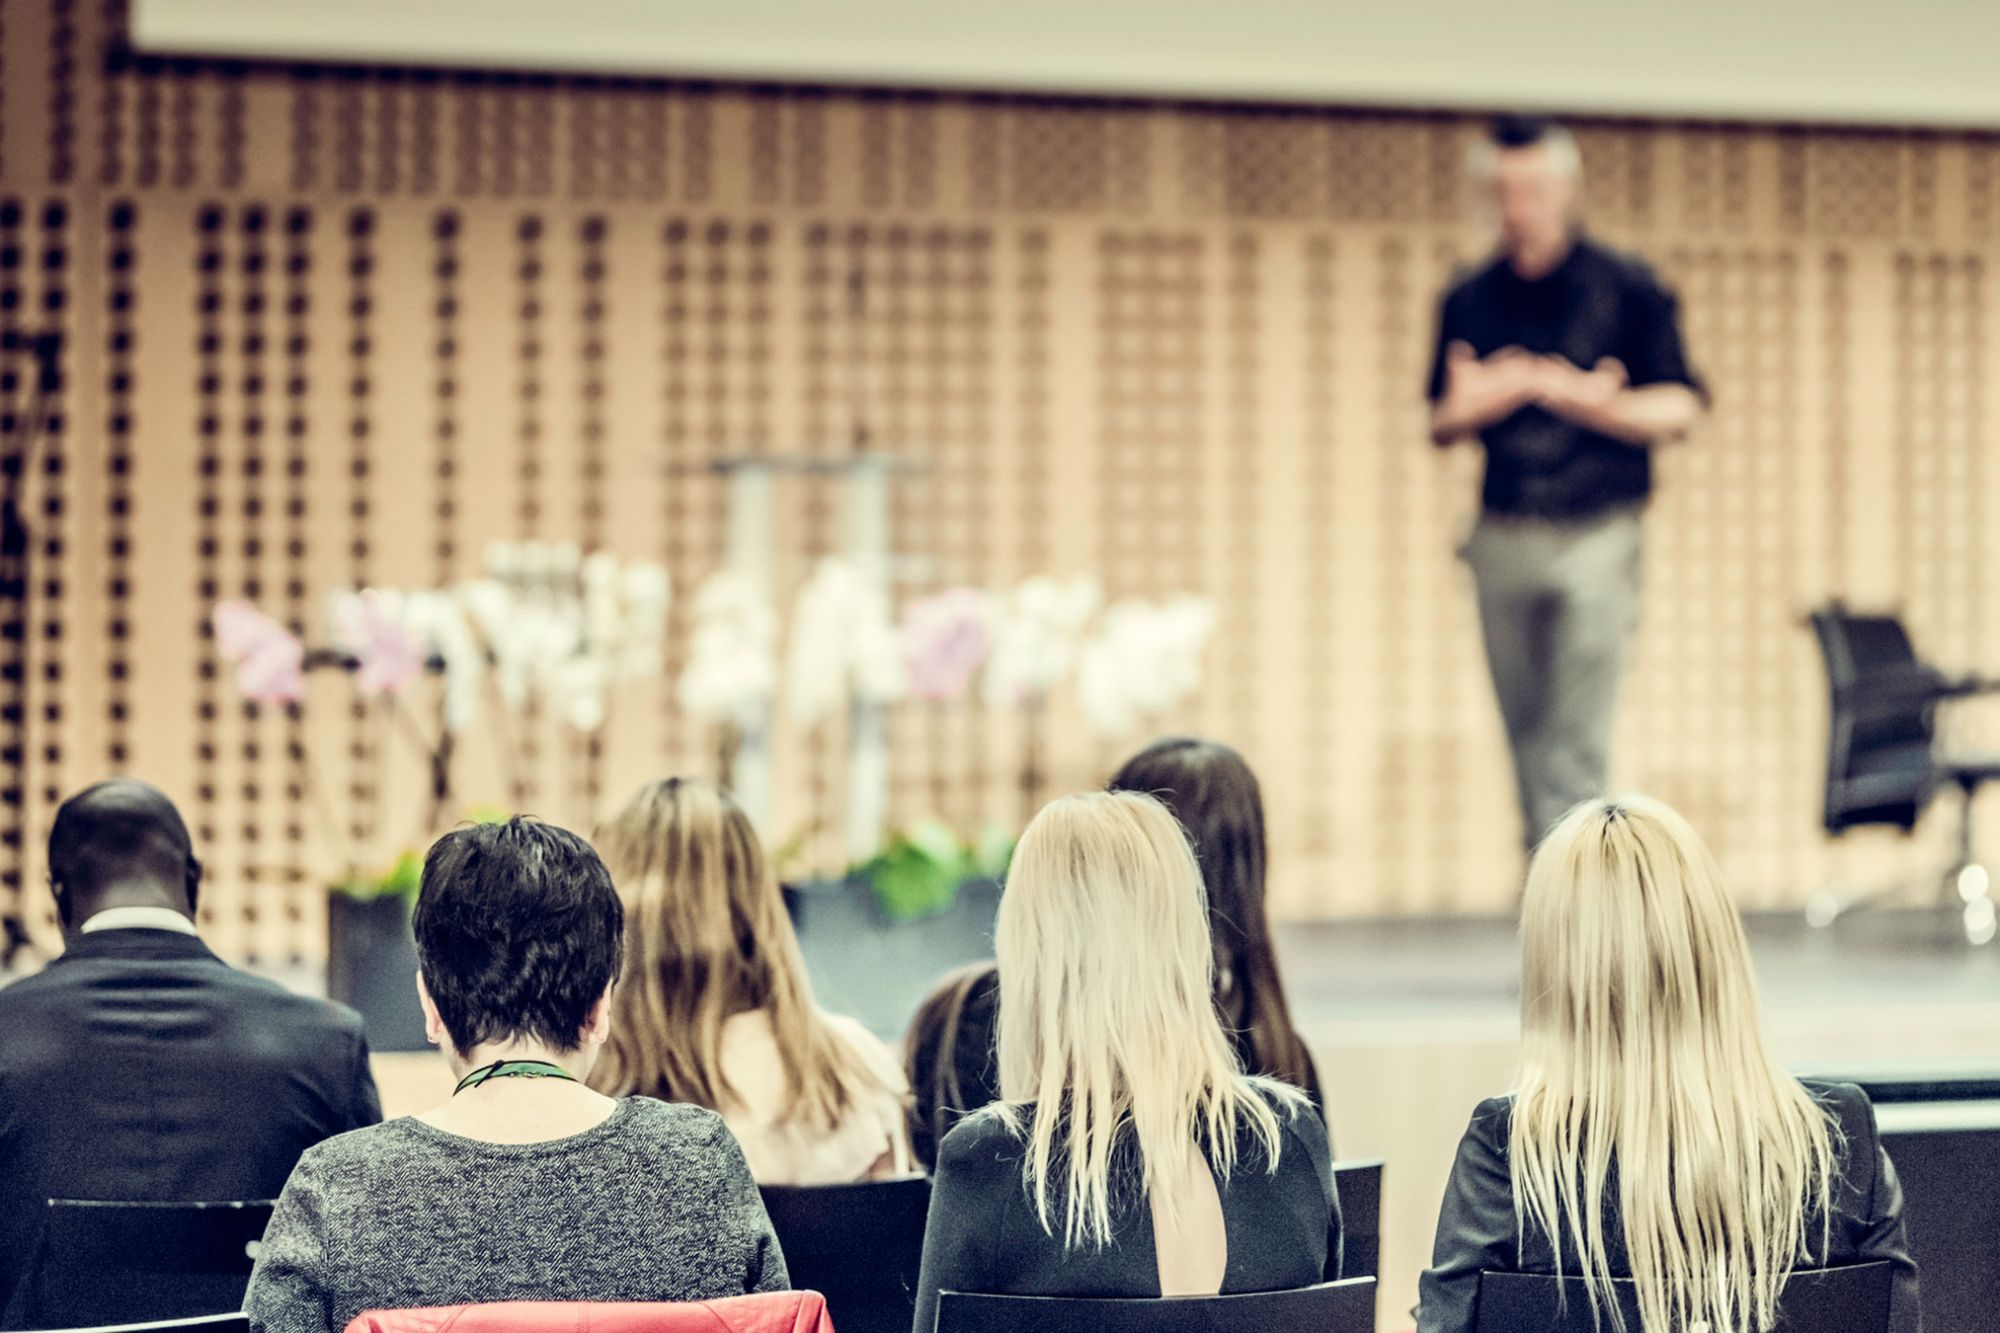 How to Avoid a 'Snoozefest' and Instead Execute a Well-Regarded B2B Event